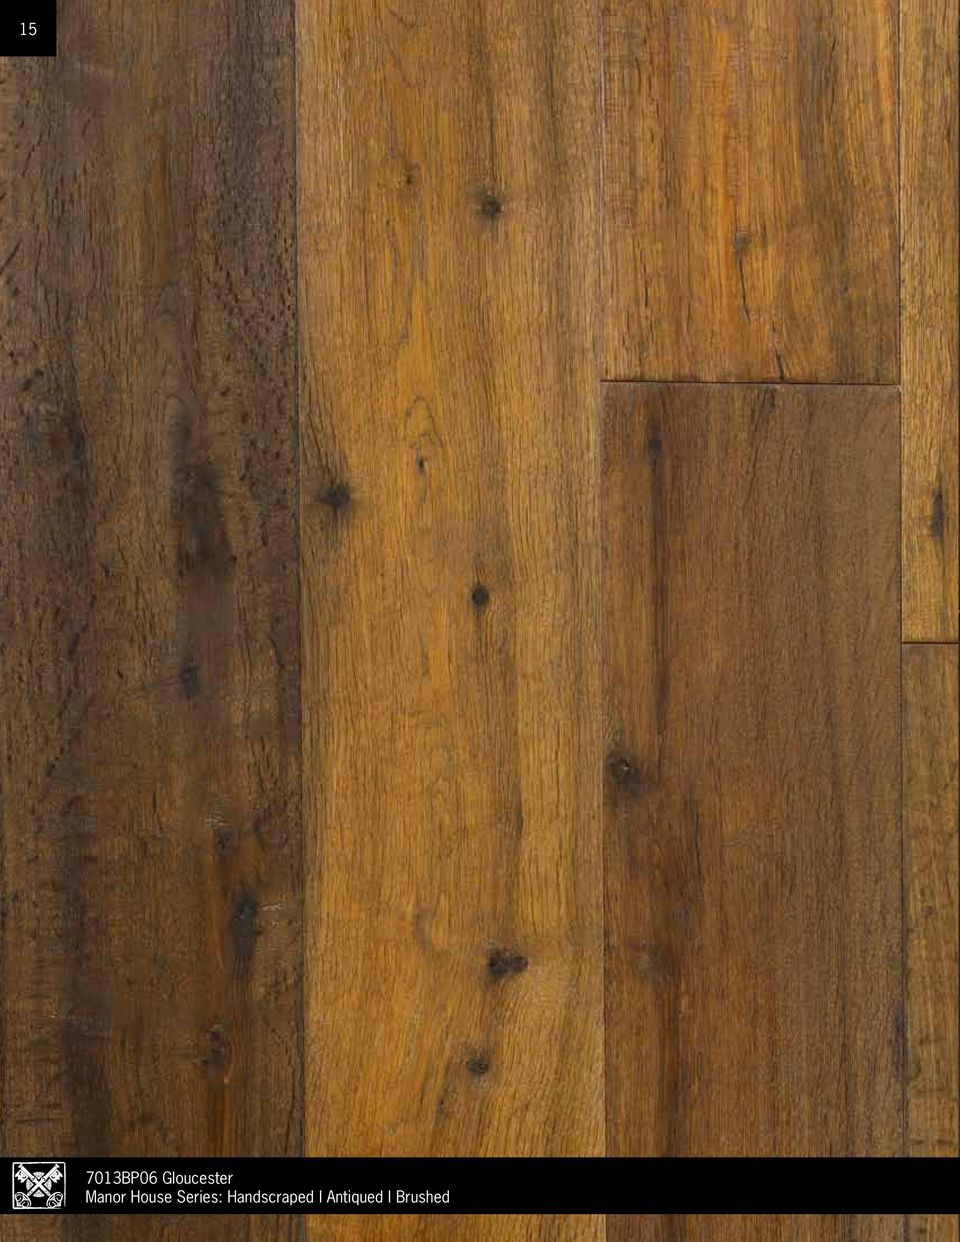 hand scraped solid hardwood flooring of make any home a castle pdf within 16 bp06 gloucester manor house series handscraped antiqued brushed